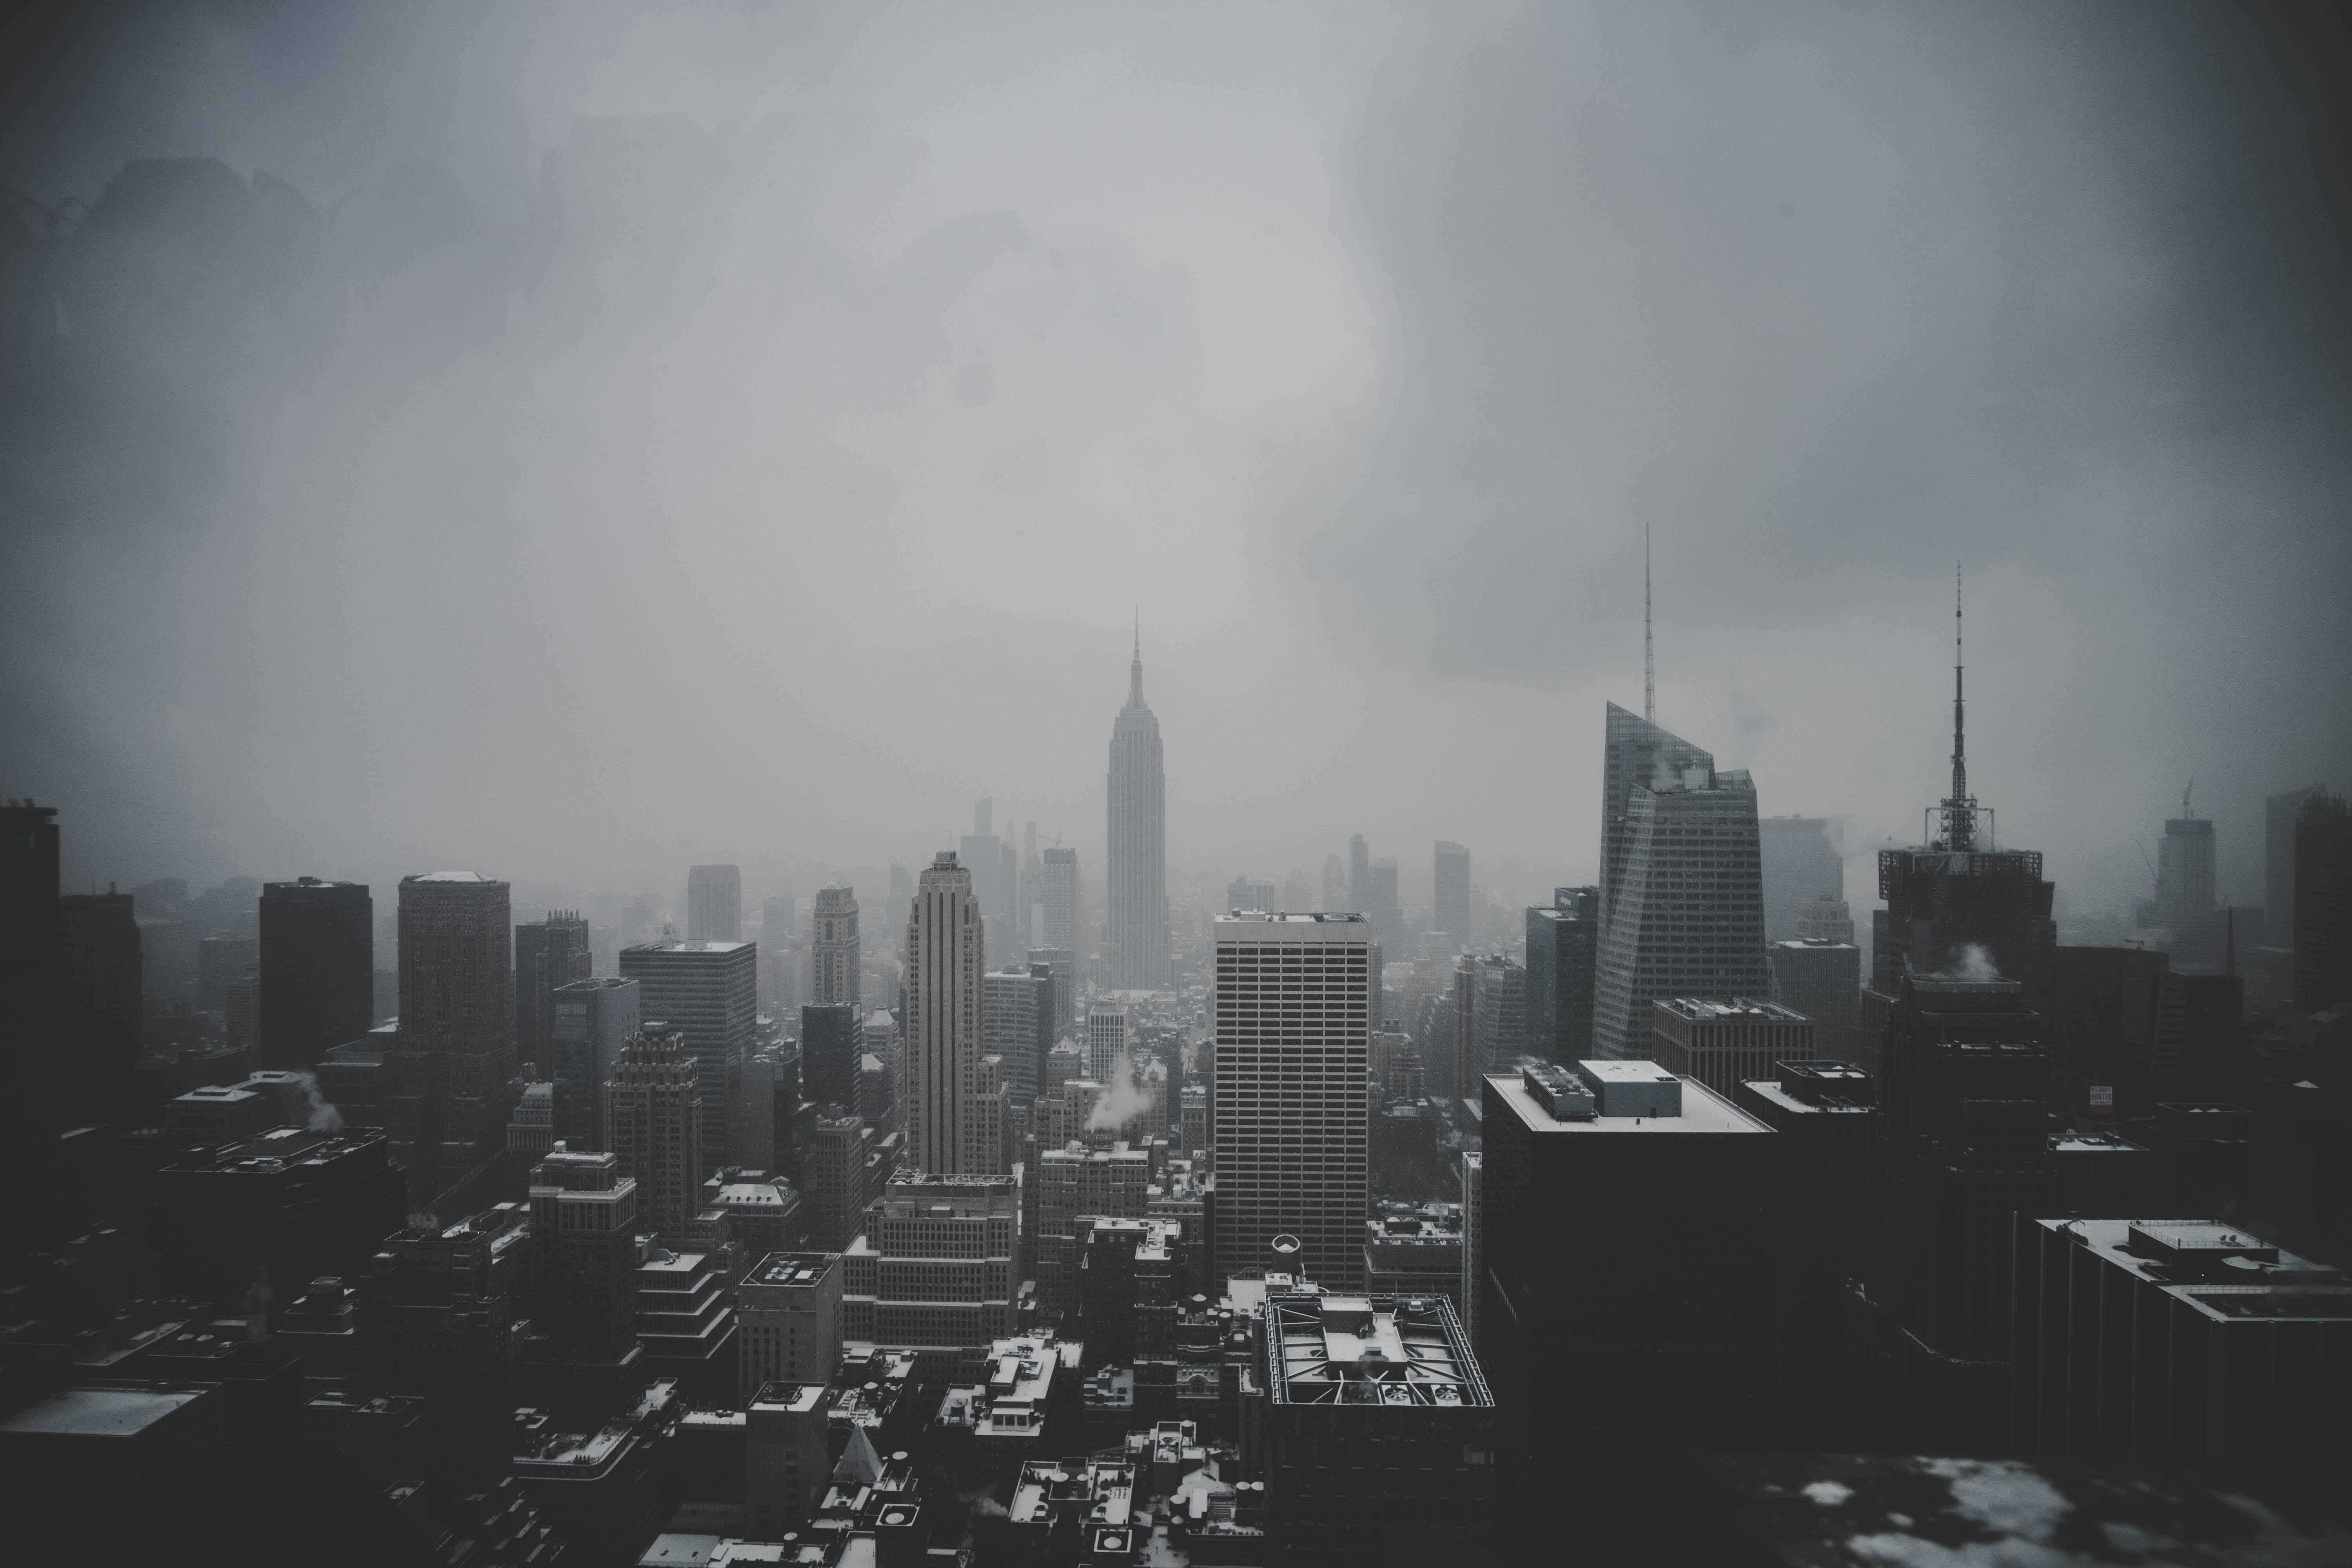 high-rise buildings under the cloudy sky